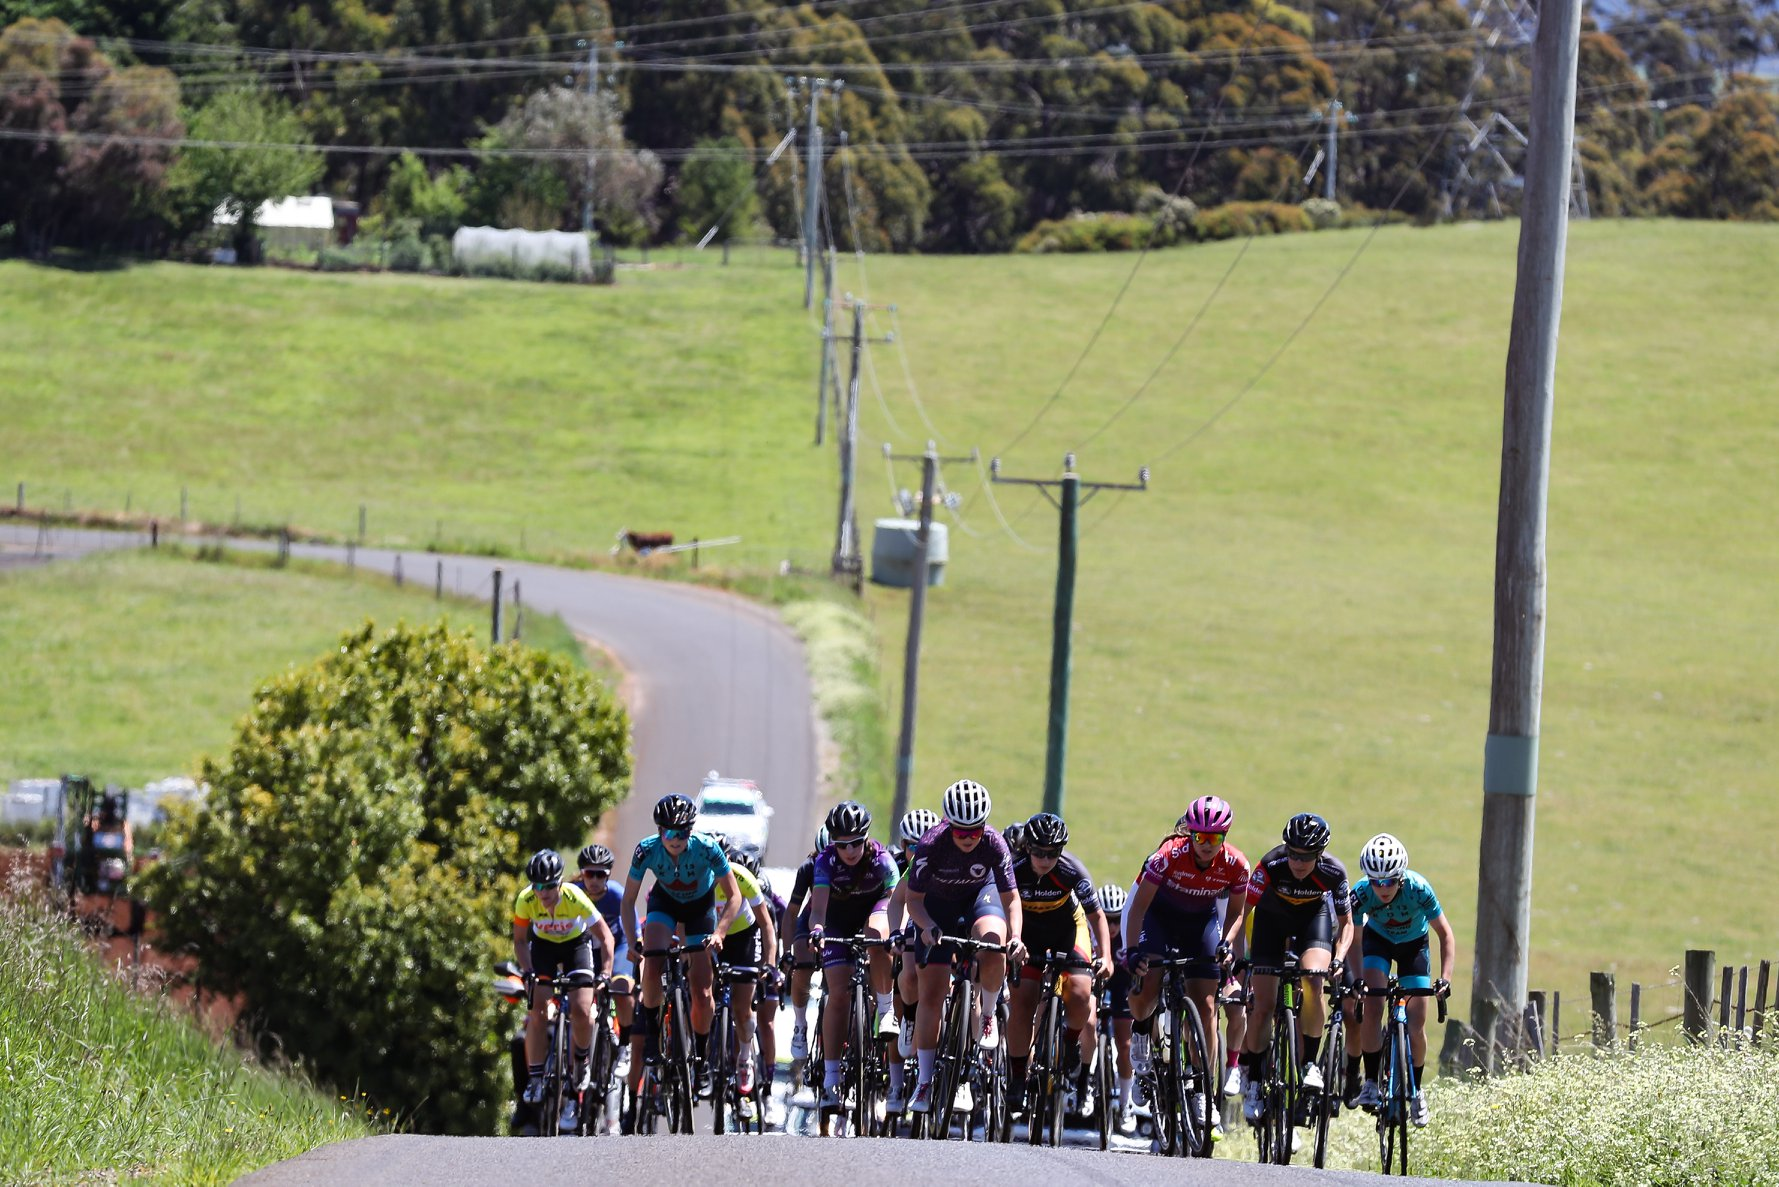 Lizzie (L) and Kmac (R) both stayed near the front for all the climbs. Photo credit: Con Chronis Photography.